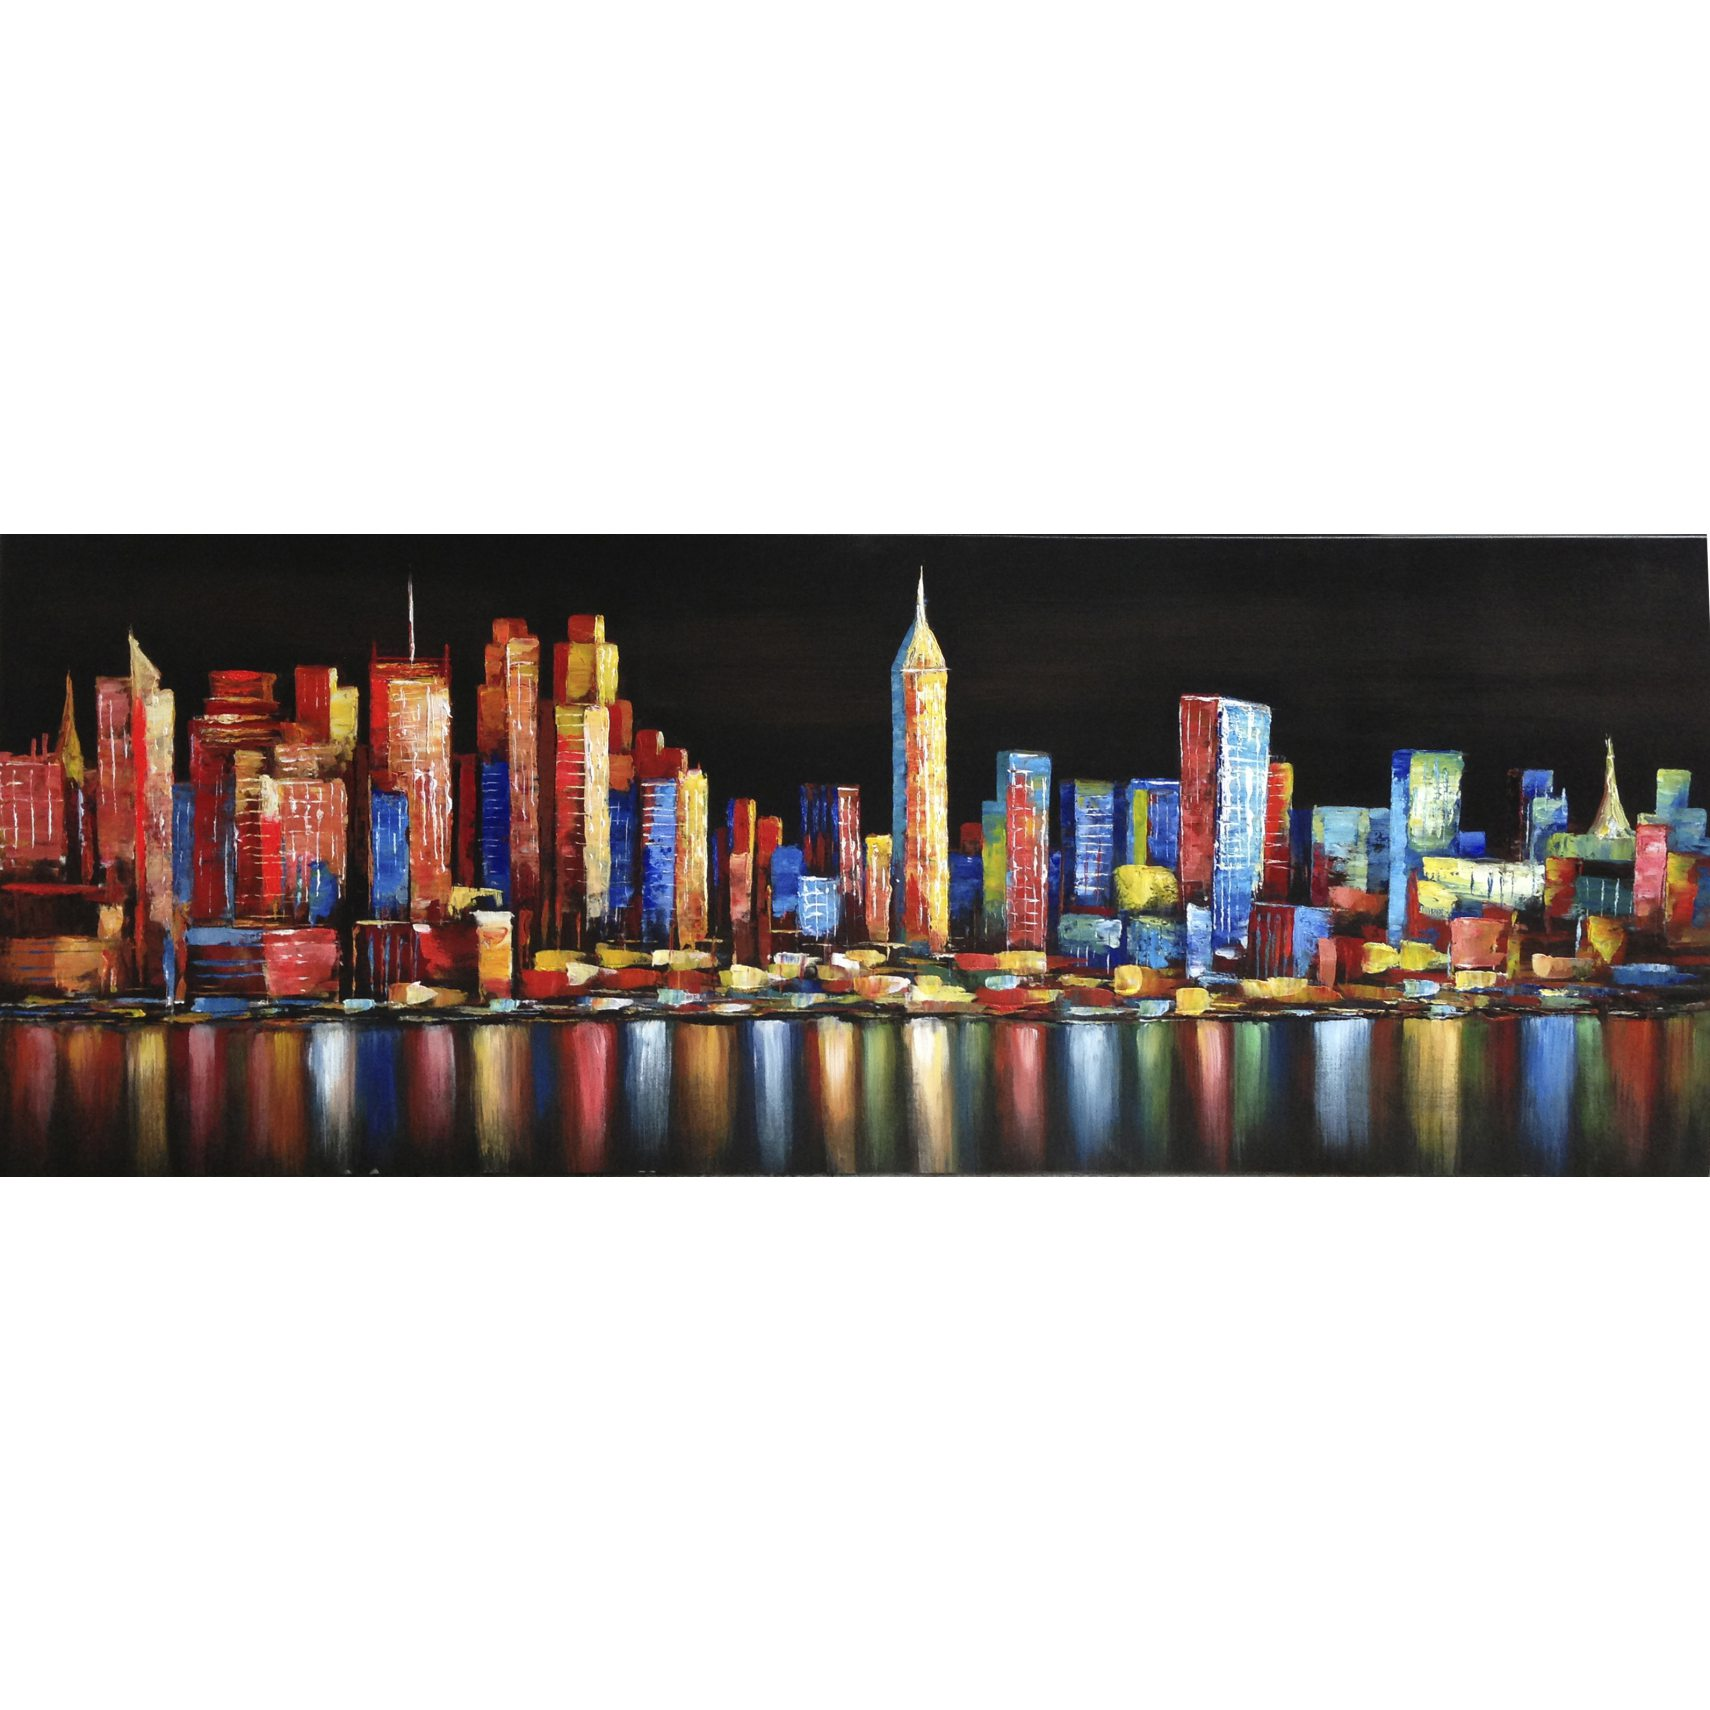 CITYSCAPE NIGHT Canvastavla 160 x 70 x 3 cm -